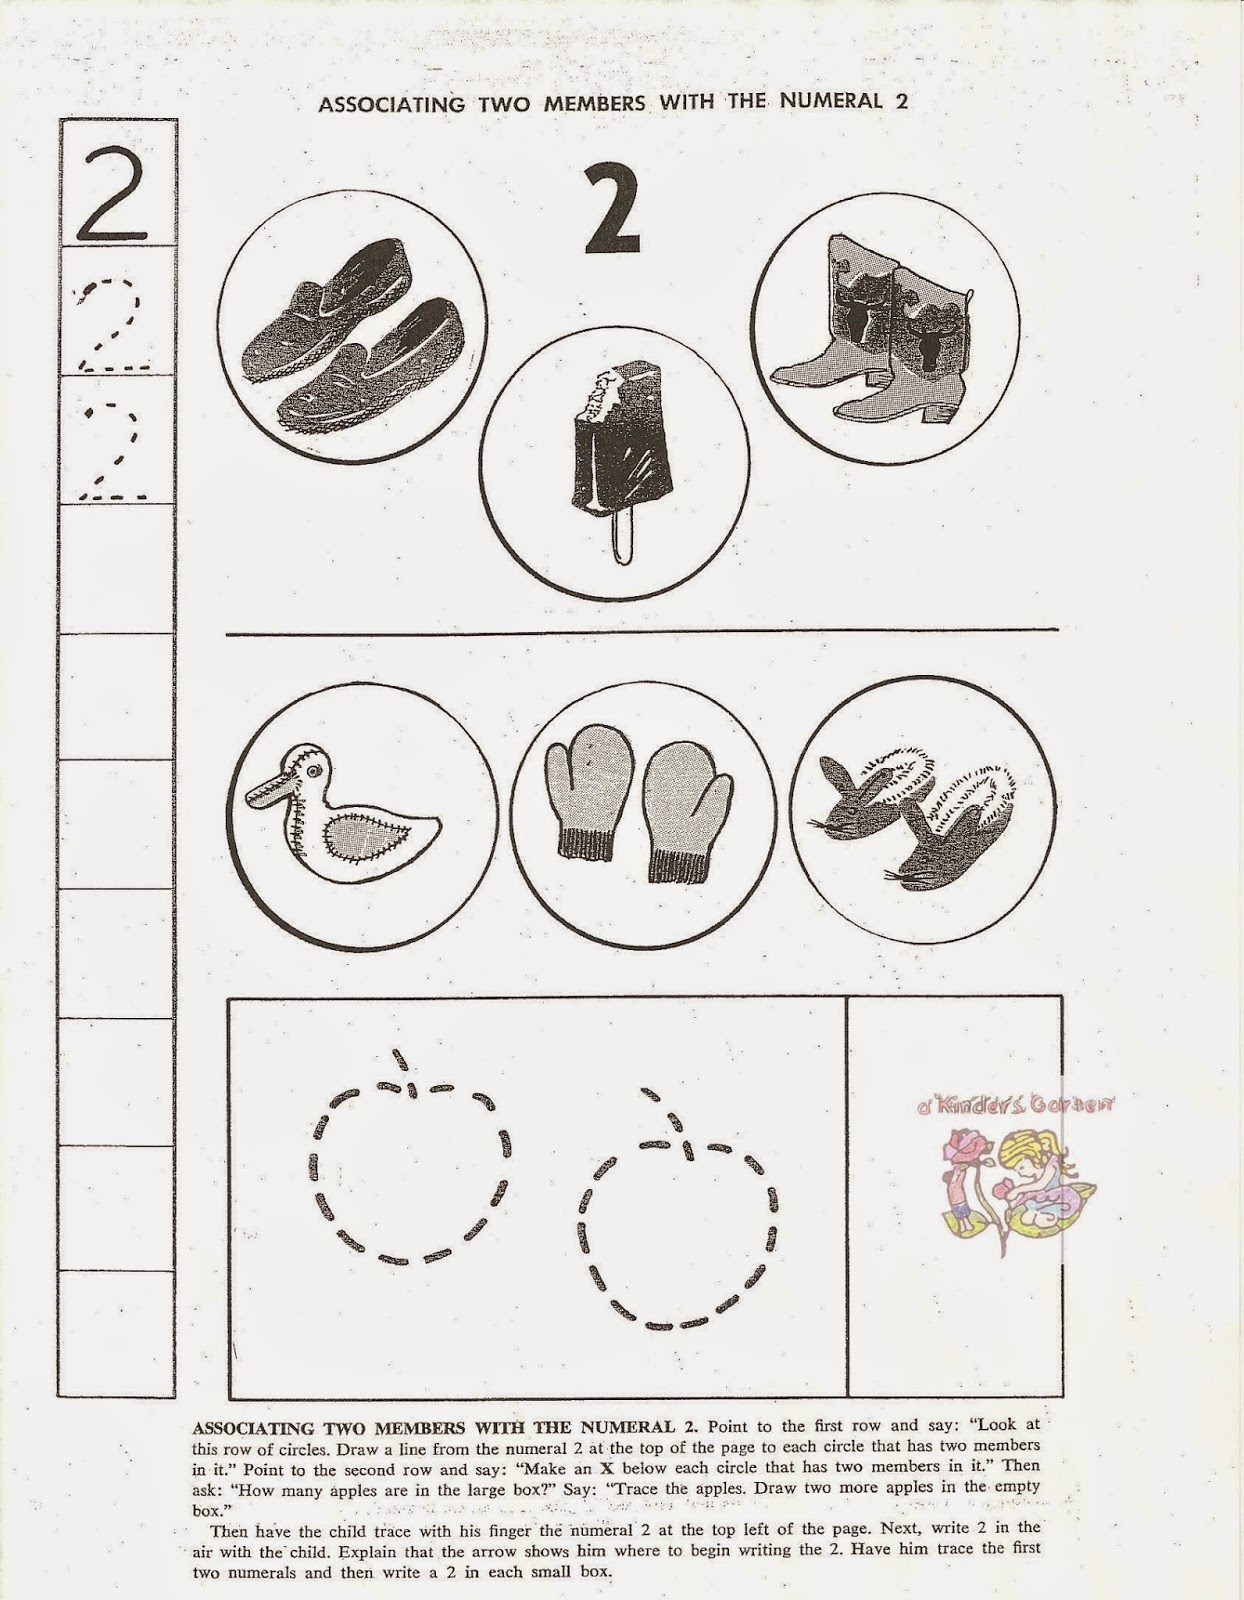 A Kinders Garten Vintage Homeschool Mittens For Three